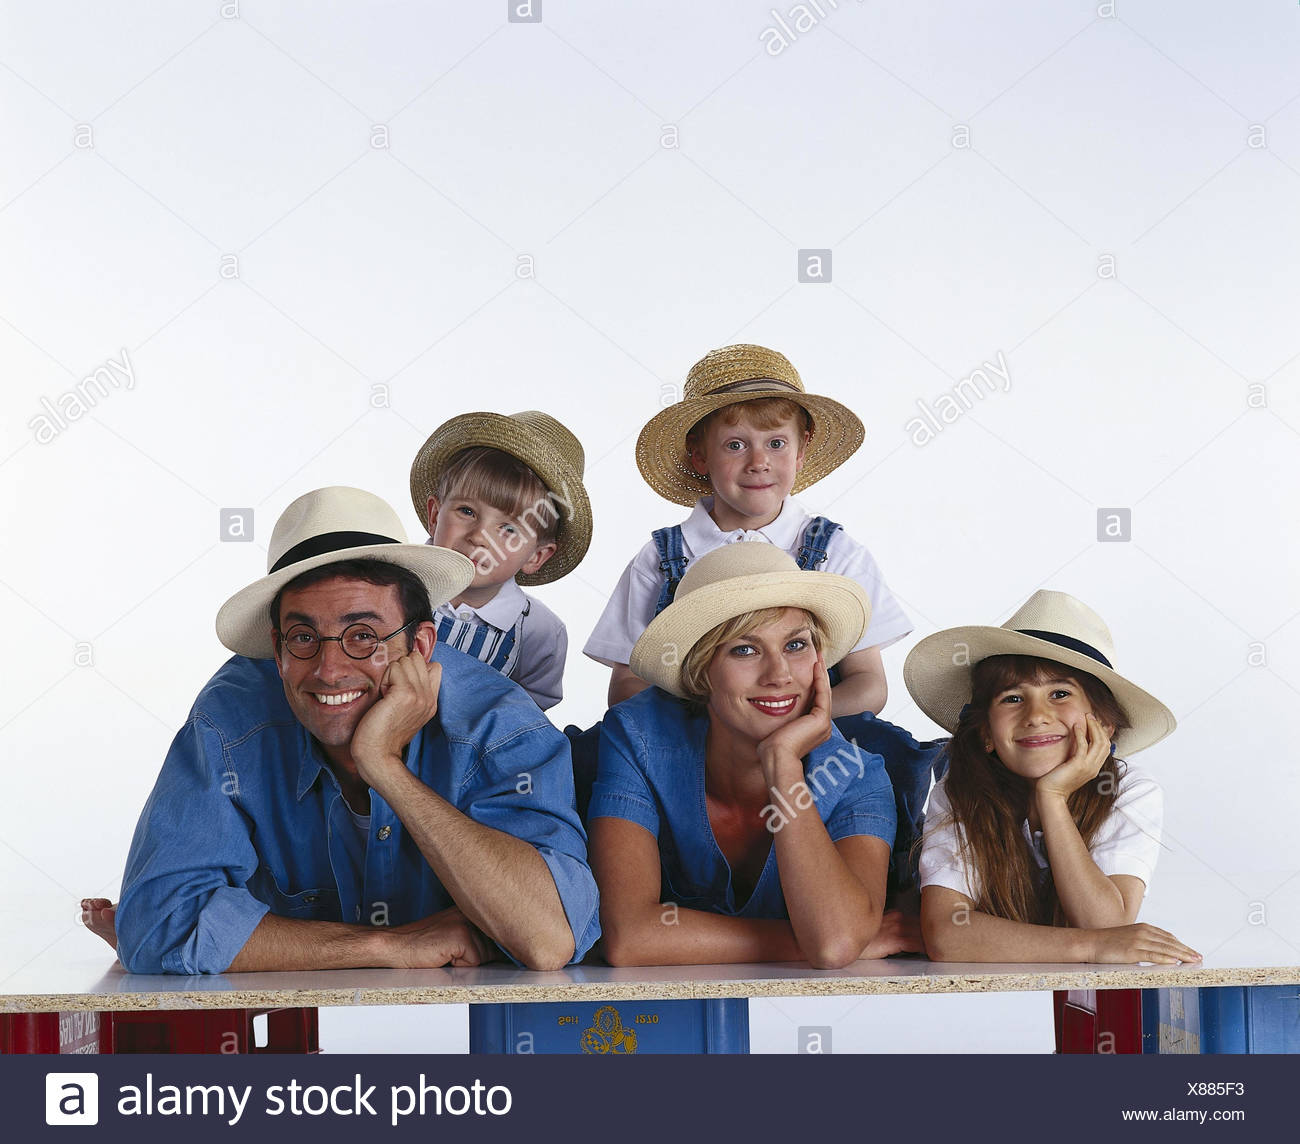 Family, hats, happy, hand, head, rest on, there, smile, group picture parents, woman, man, children, boys, girls, three, care, straw hat, headgear, positively, mood, happy, together, family picture, studio Stock Photo